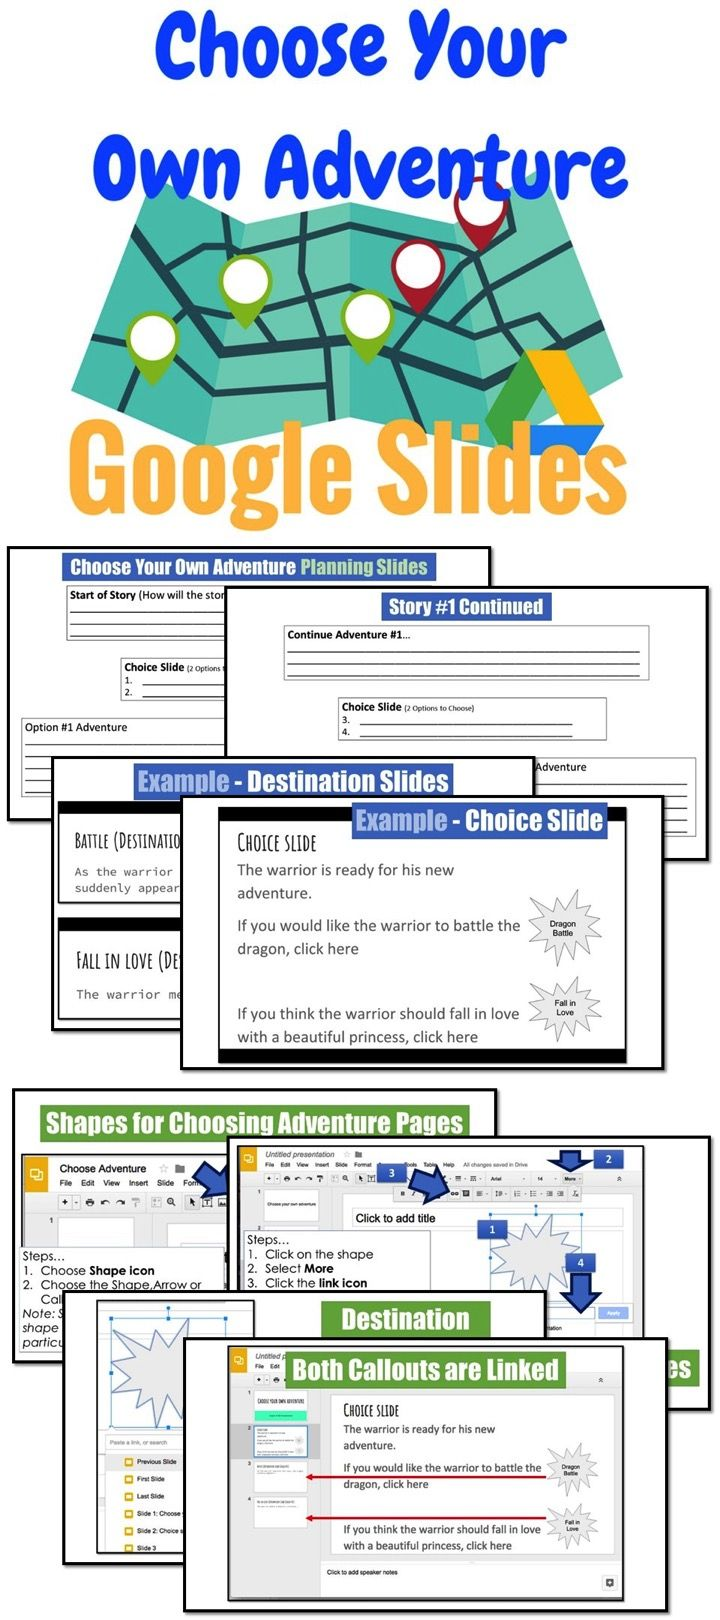 """This lesson and guide shows teachers and students how to create """"Choose Your Own Adventure"""" books in Google Slides"""